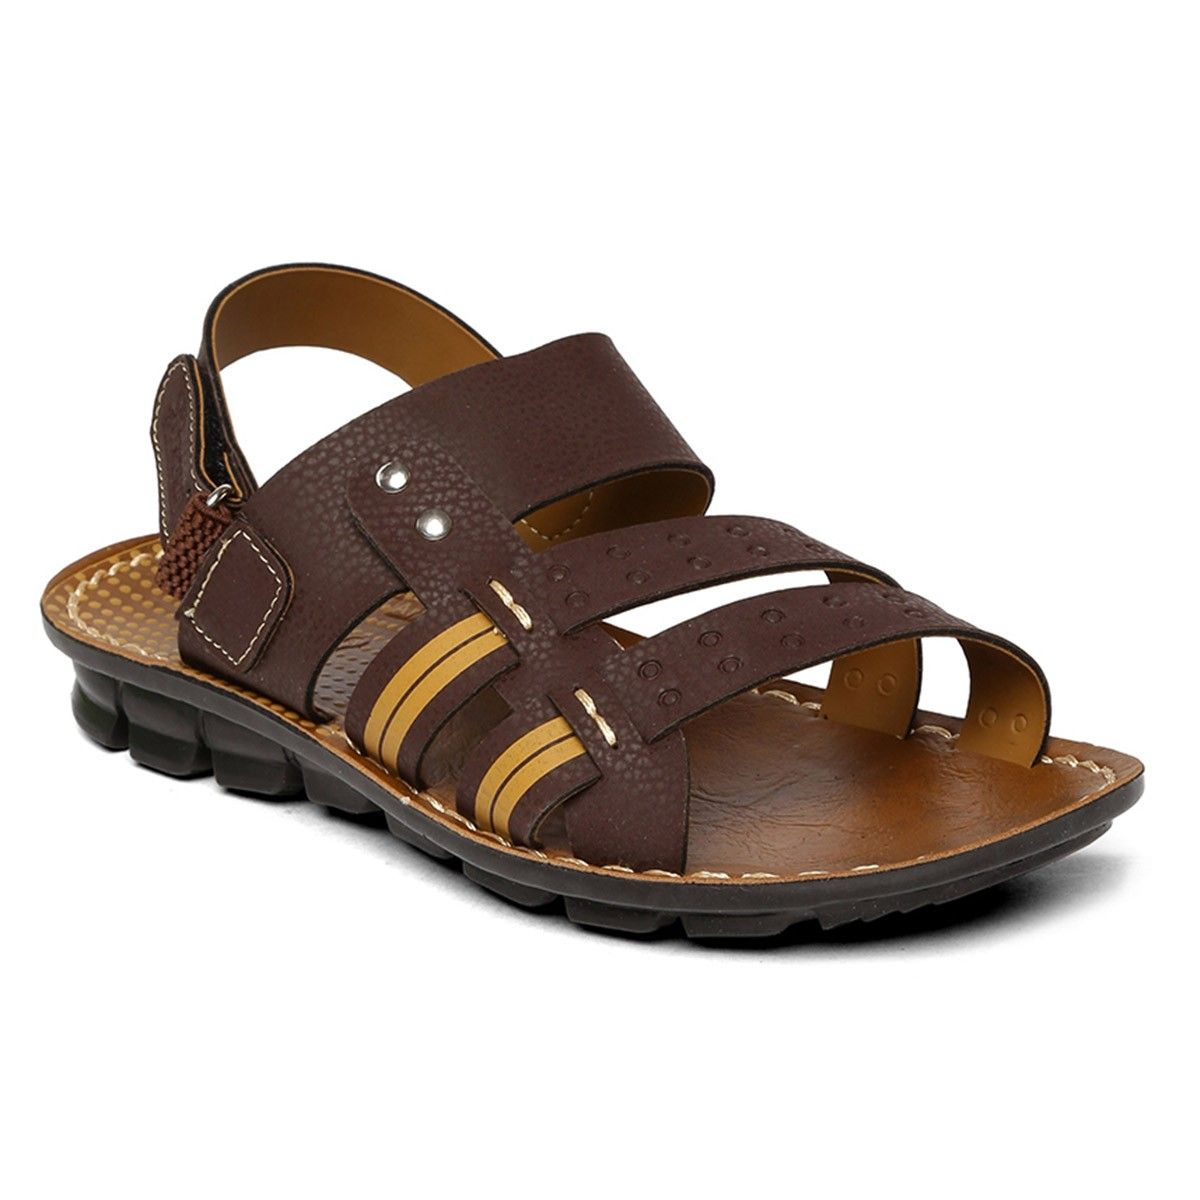 d41c985b061 Buy Rest Comfort Slippers Online at Low prices in India on Winsant, India  fastest online shopping website. #sandals #menfootwear #footwear  #mensfashion ...